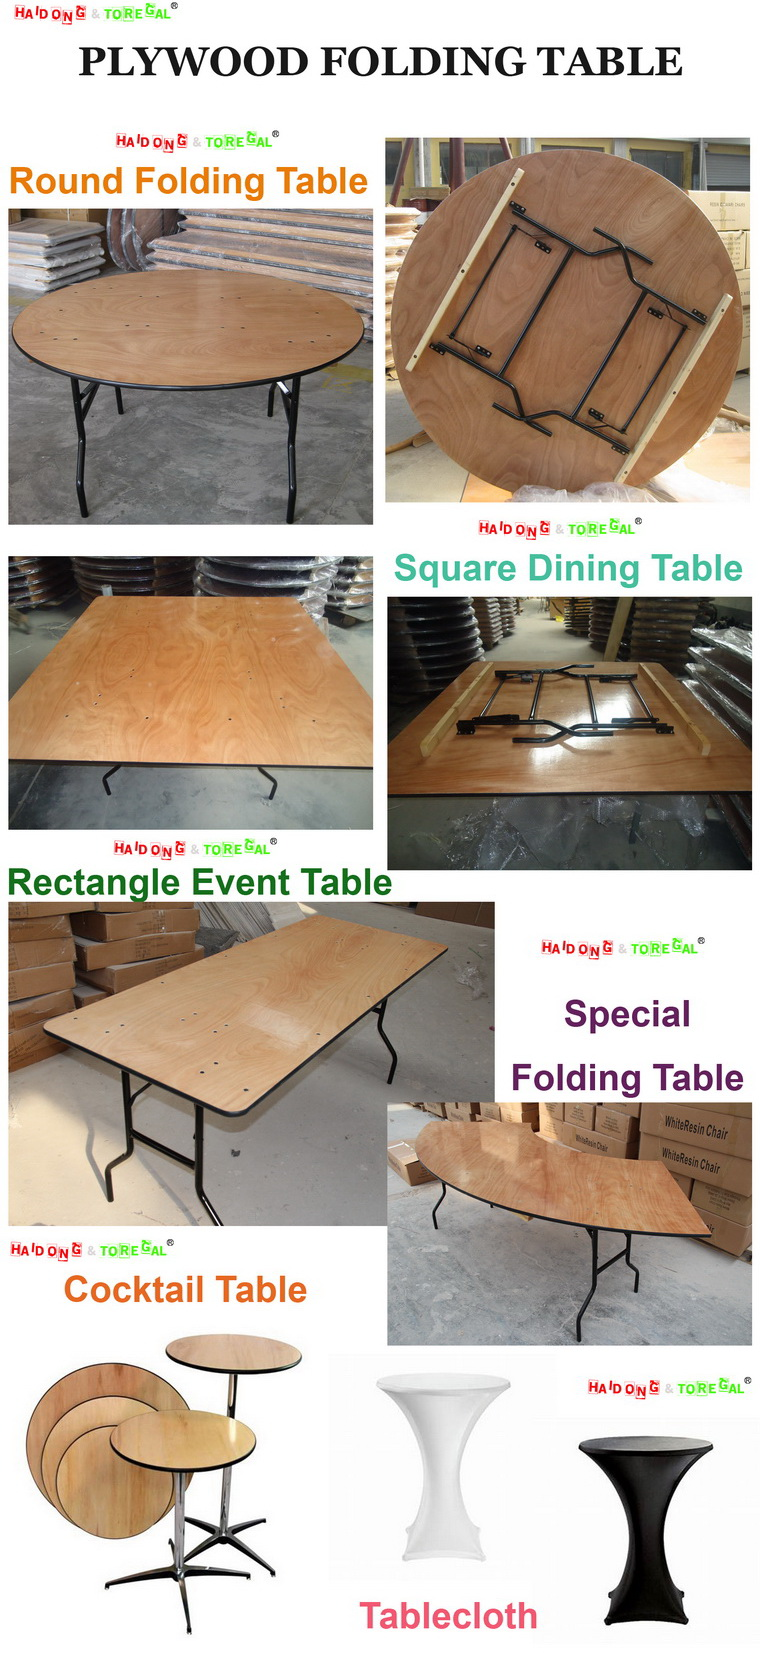 Outdoor Plywood Folding Banquet Camp Picnic Table for Sale